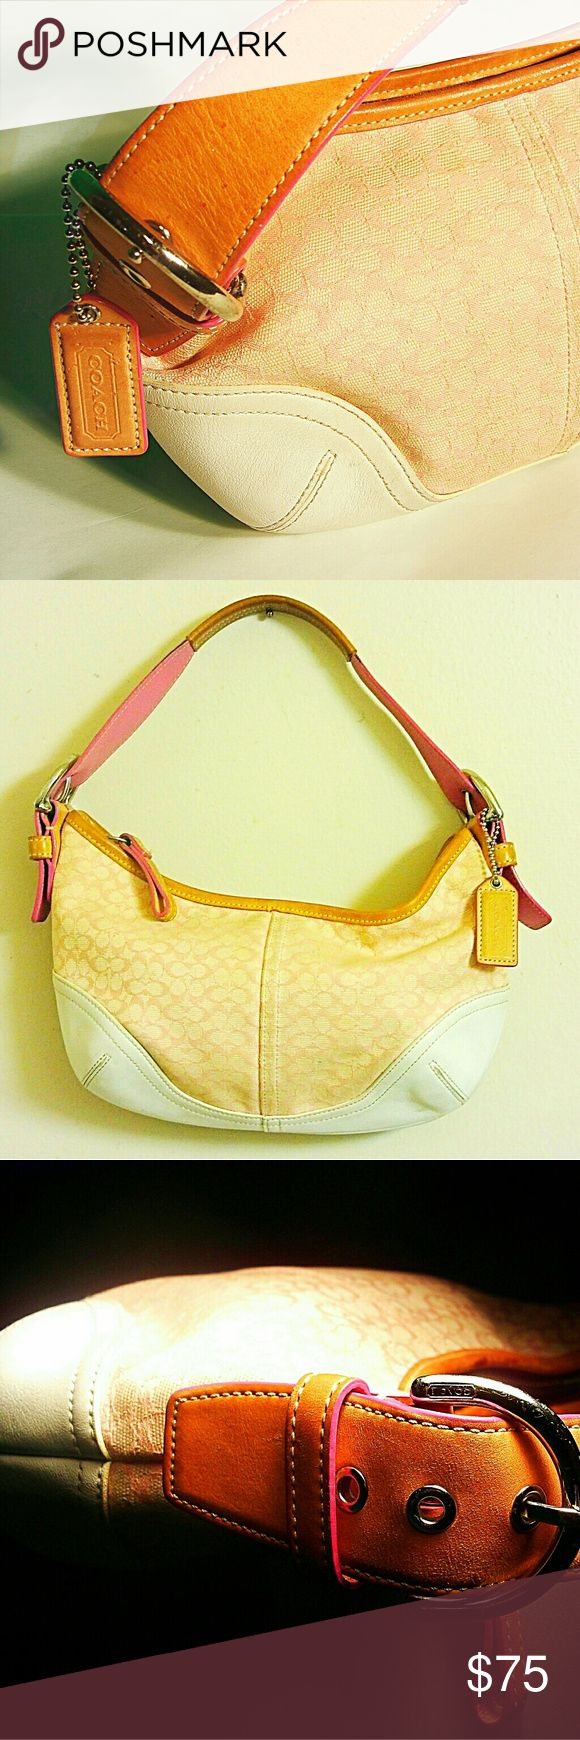 Coach Hobo bag in Tan/White/Pink Used but in great shape Coach Bags Hobos